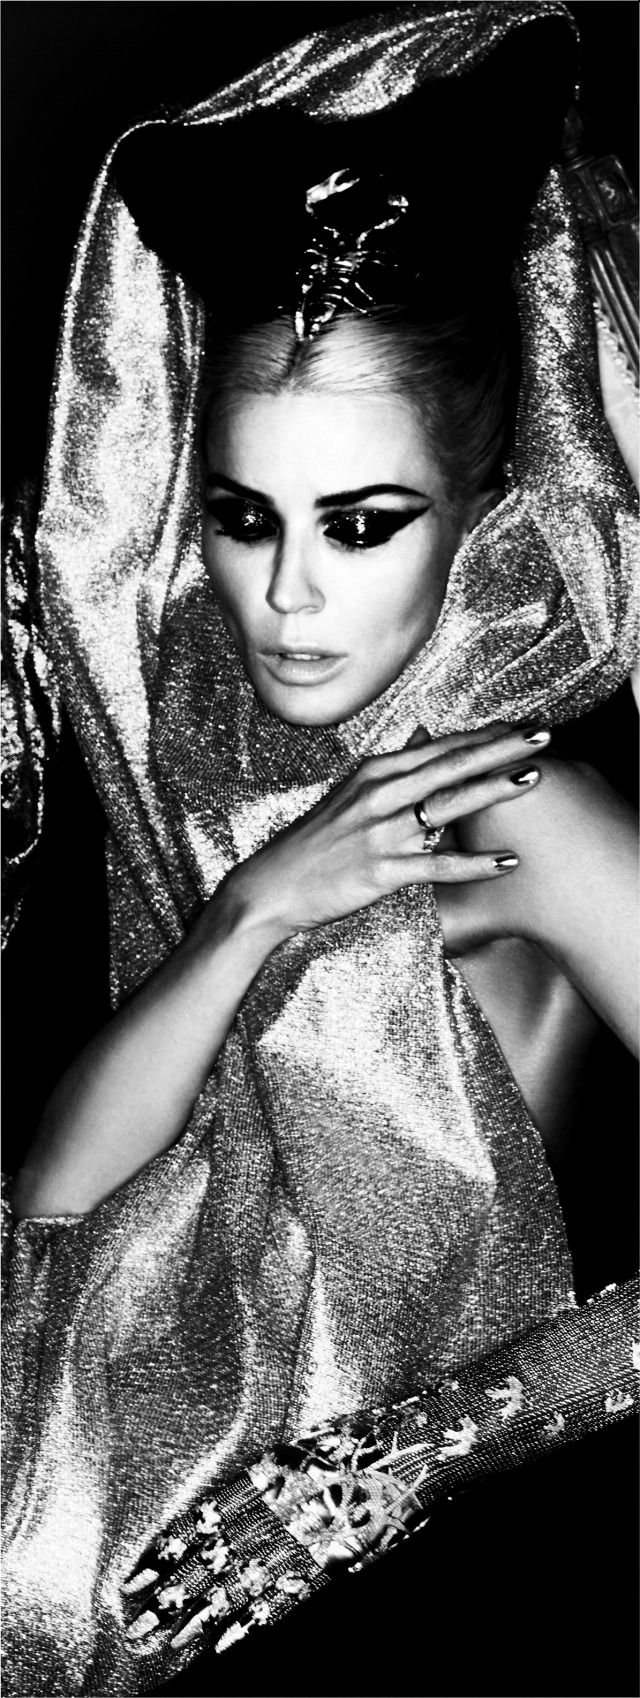 The Daphne Guinness Collection - auction tonight! - SHOWstudio - The Home of Fashion Film Marchesa Luisa Casati Style #gothic princess